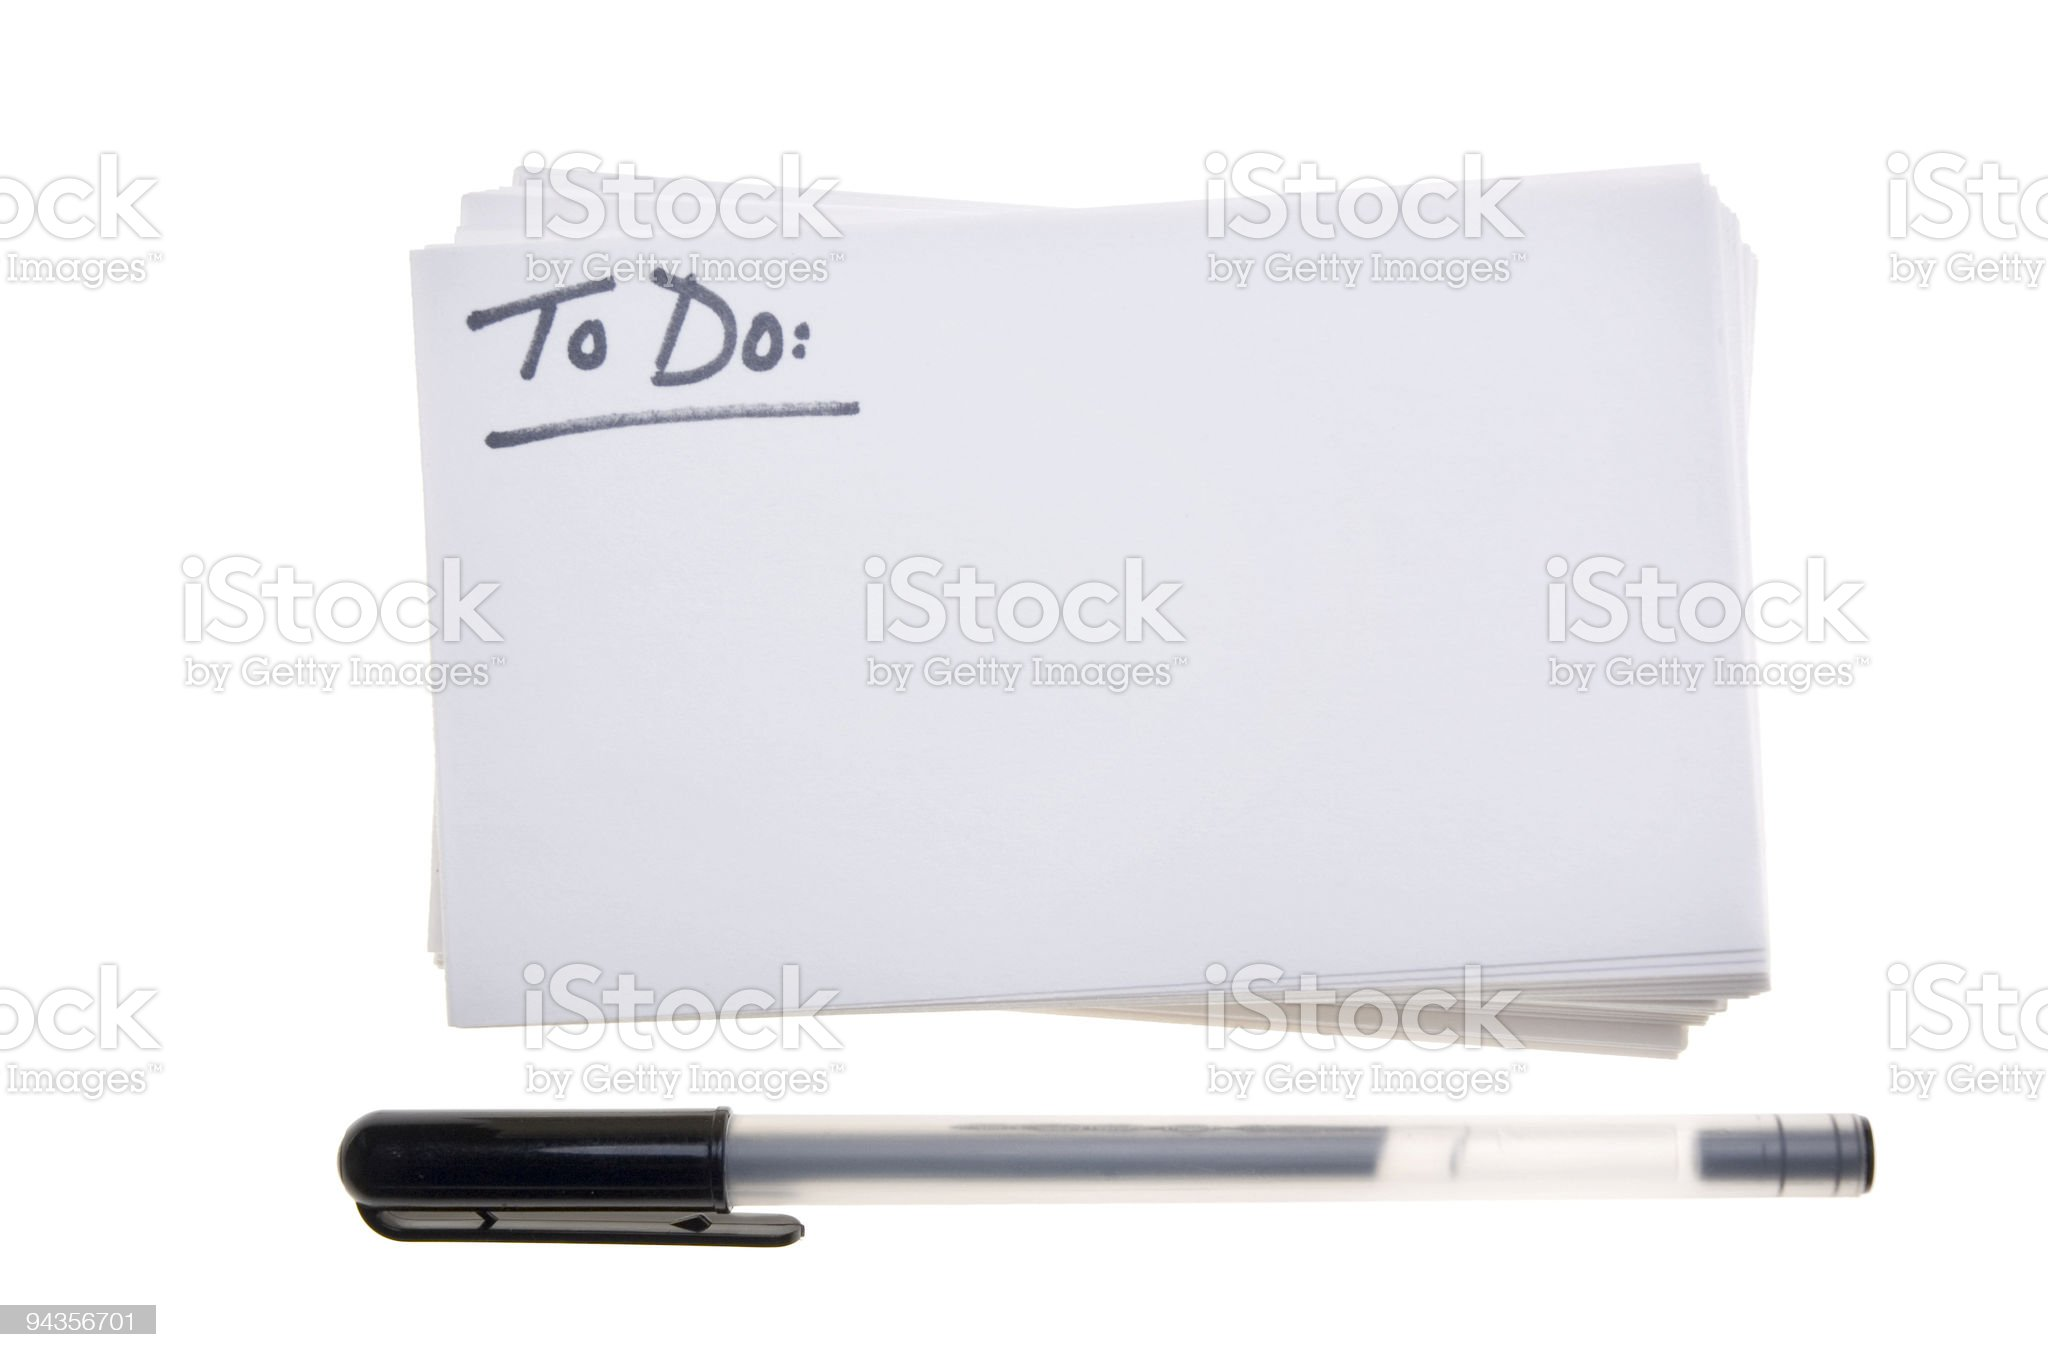 To Do on Index Cards royalty-free stock photo